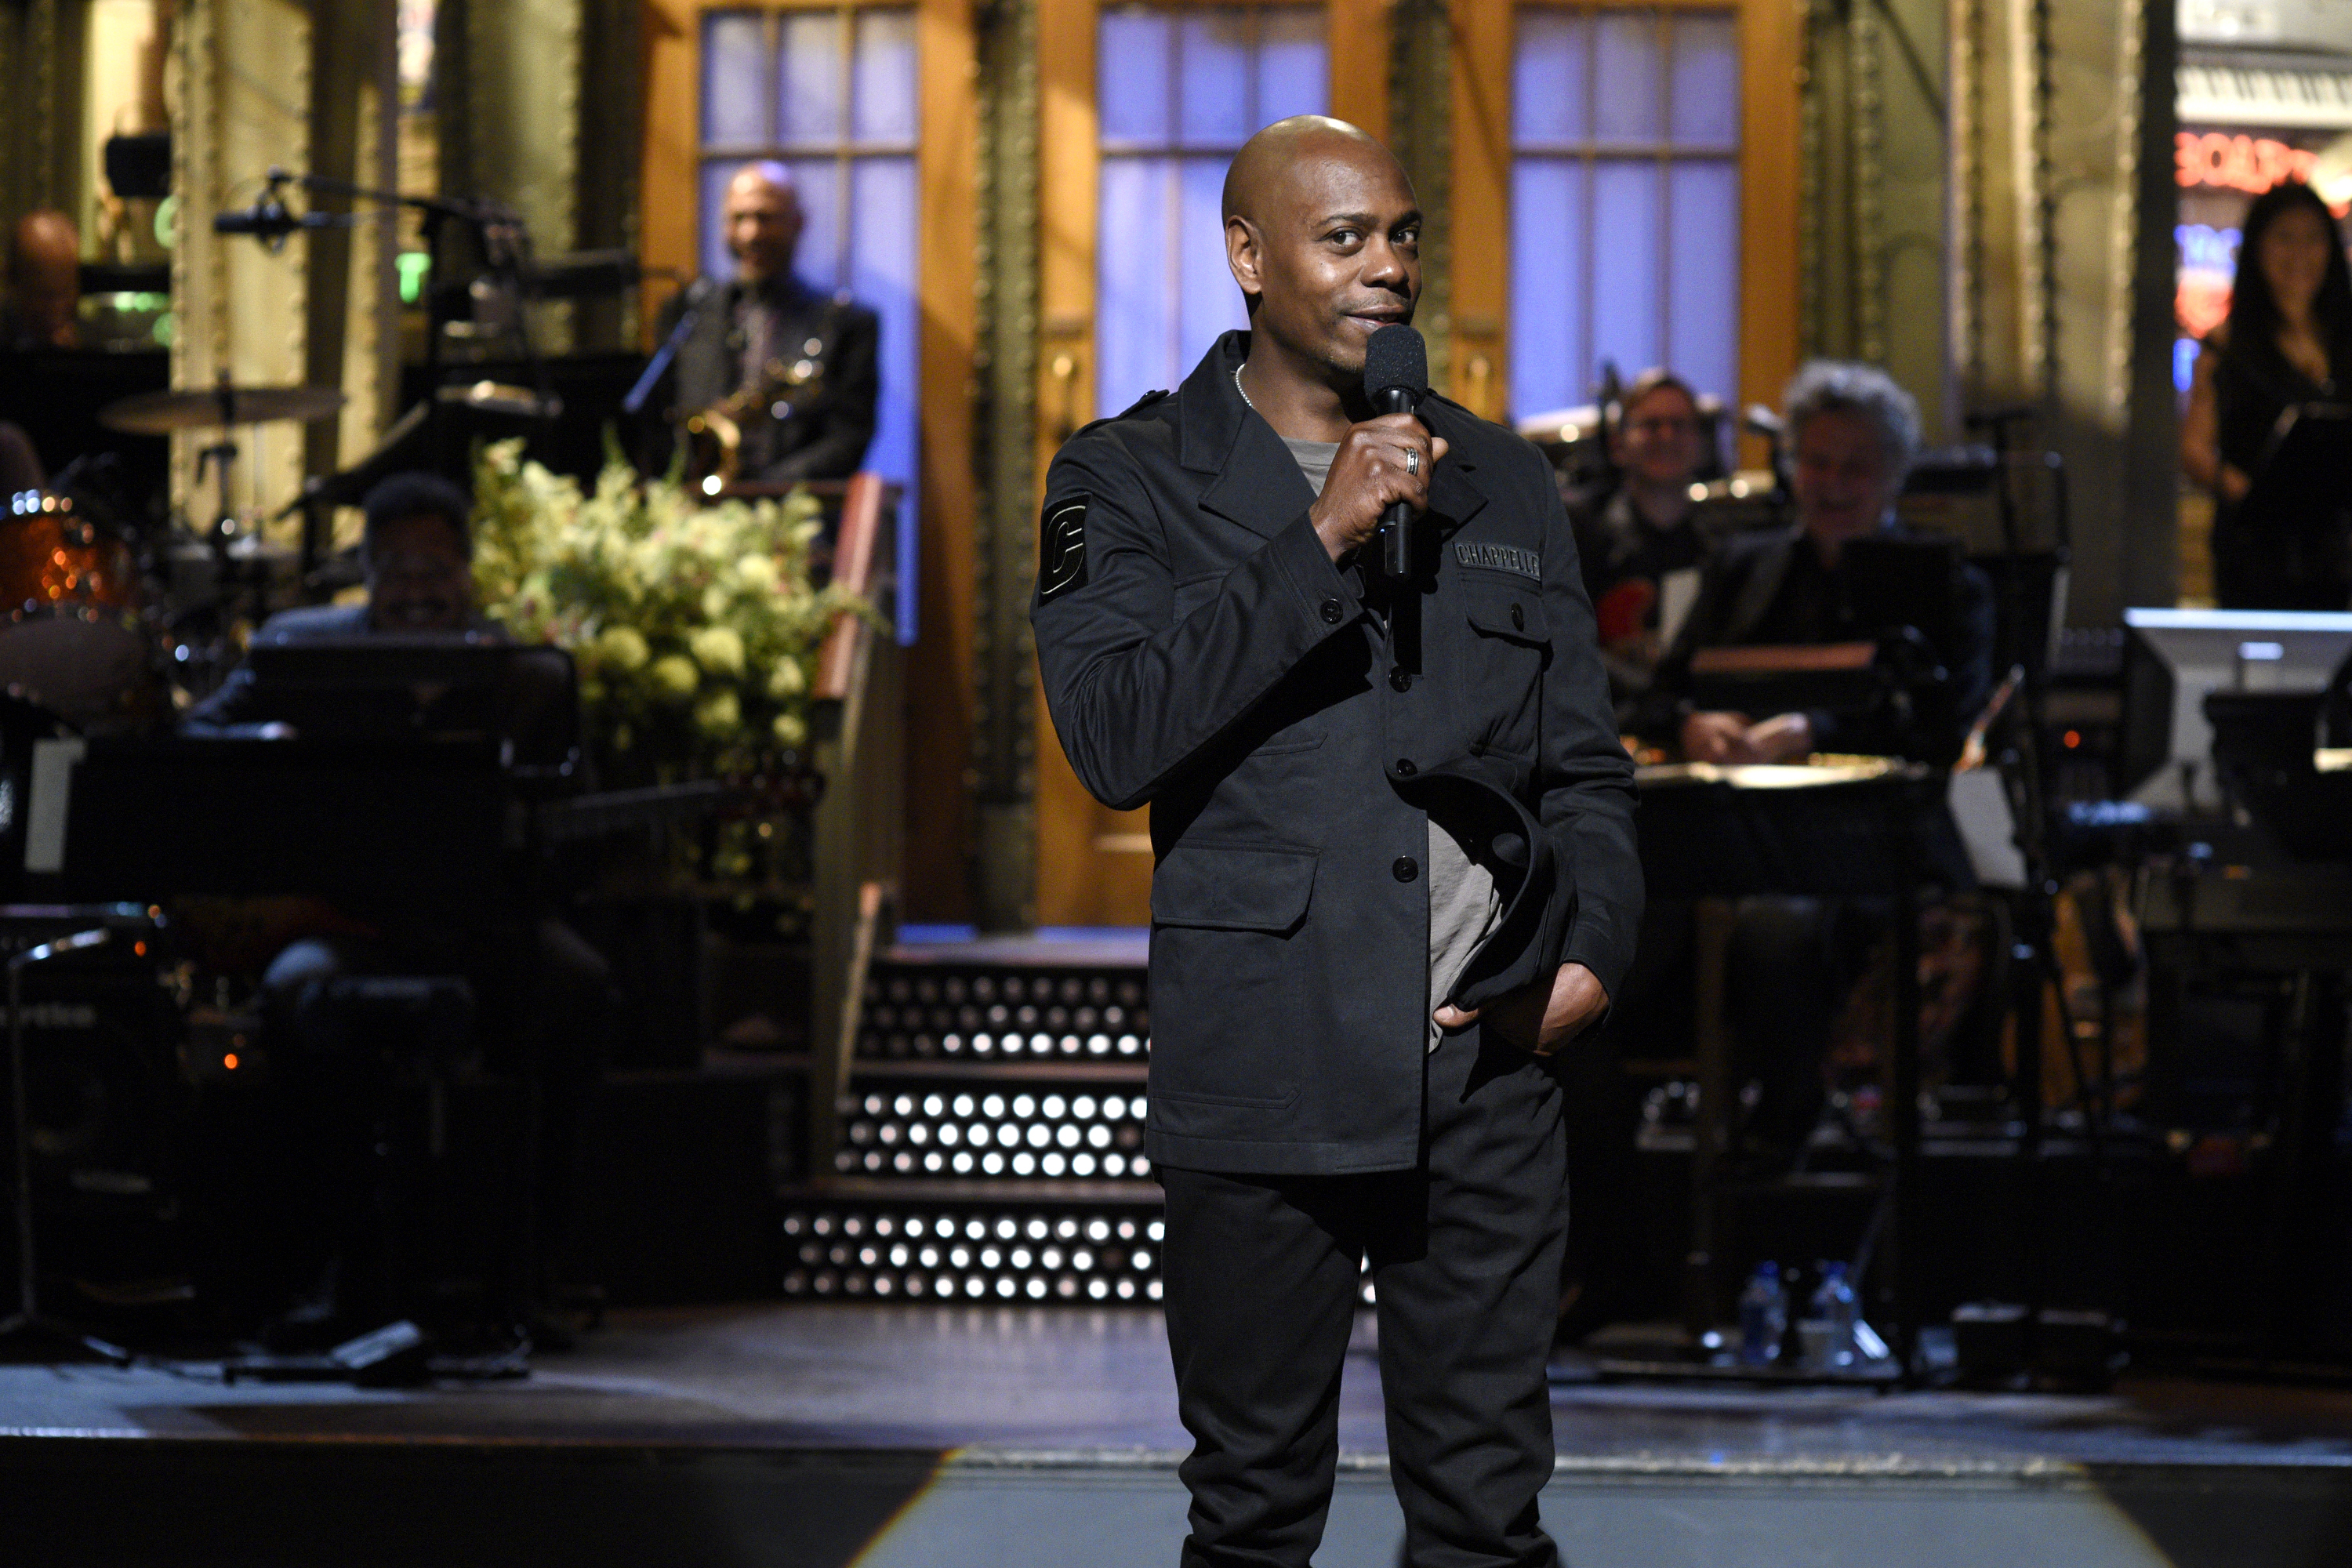 Saturday Night Live Host Dave Chappelle during the monologue on November 12, 2016.